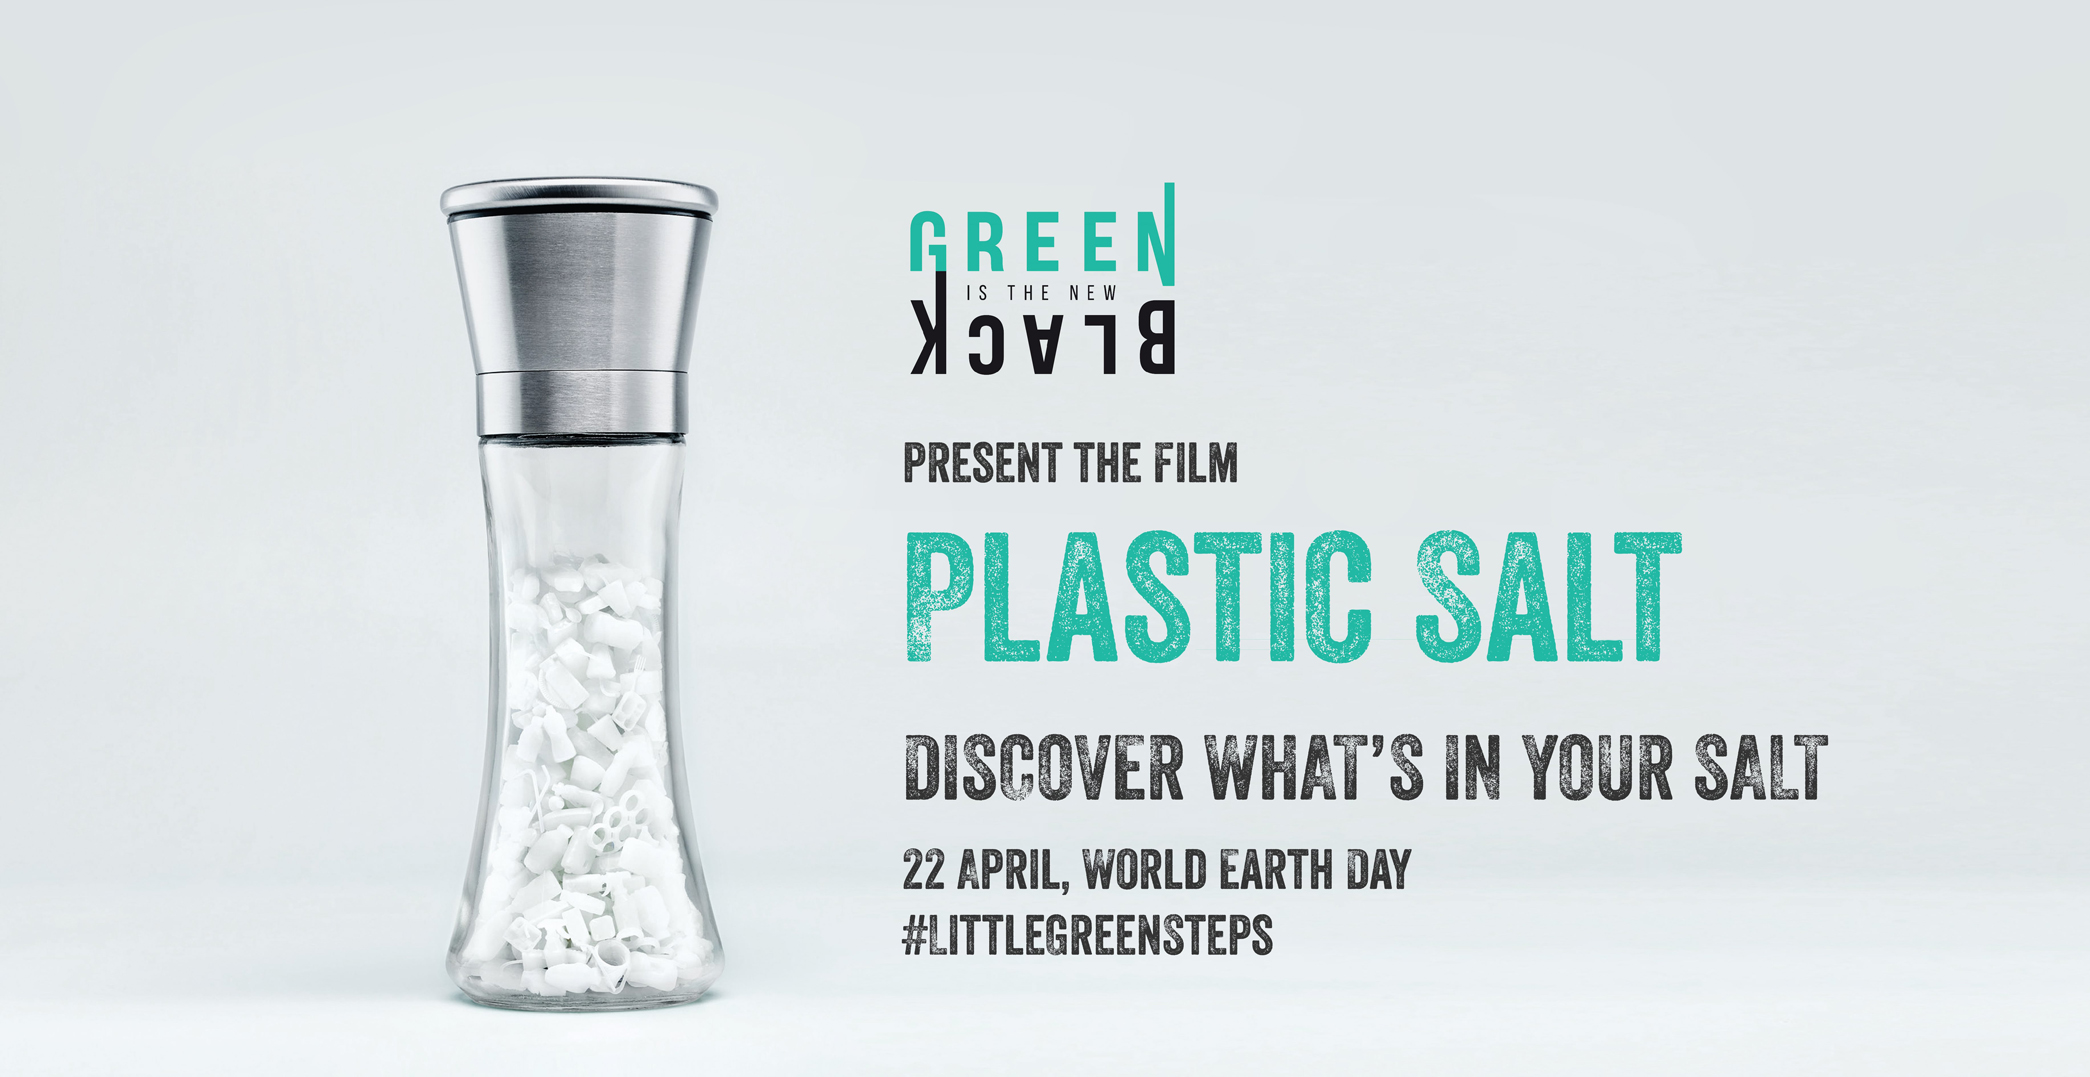 Dentsu Singapore and Green is the New Black highlight the amount of microplastics in Salt for World Earth Day